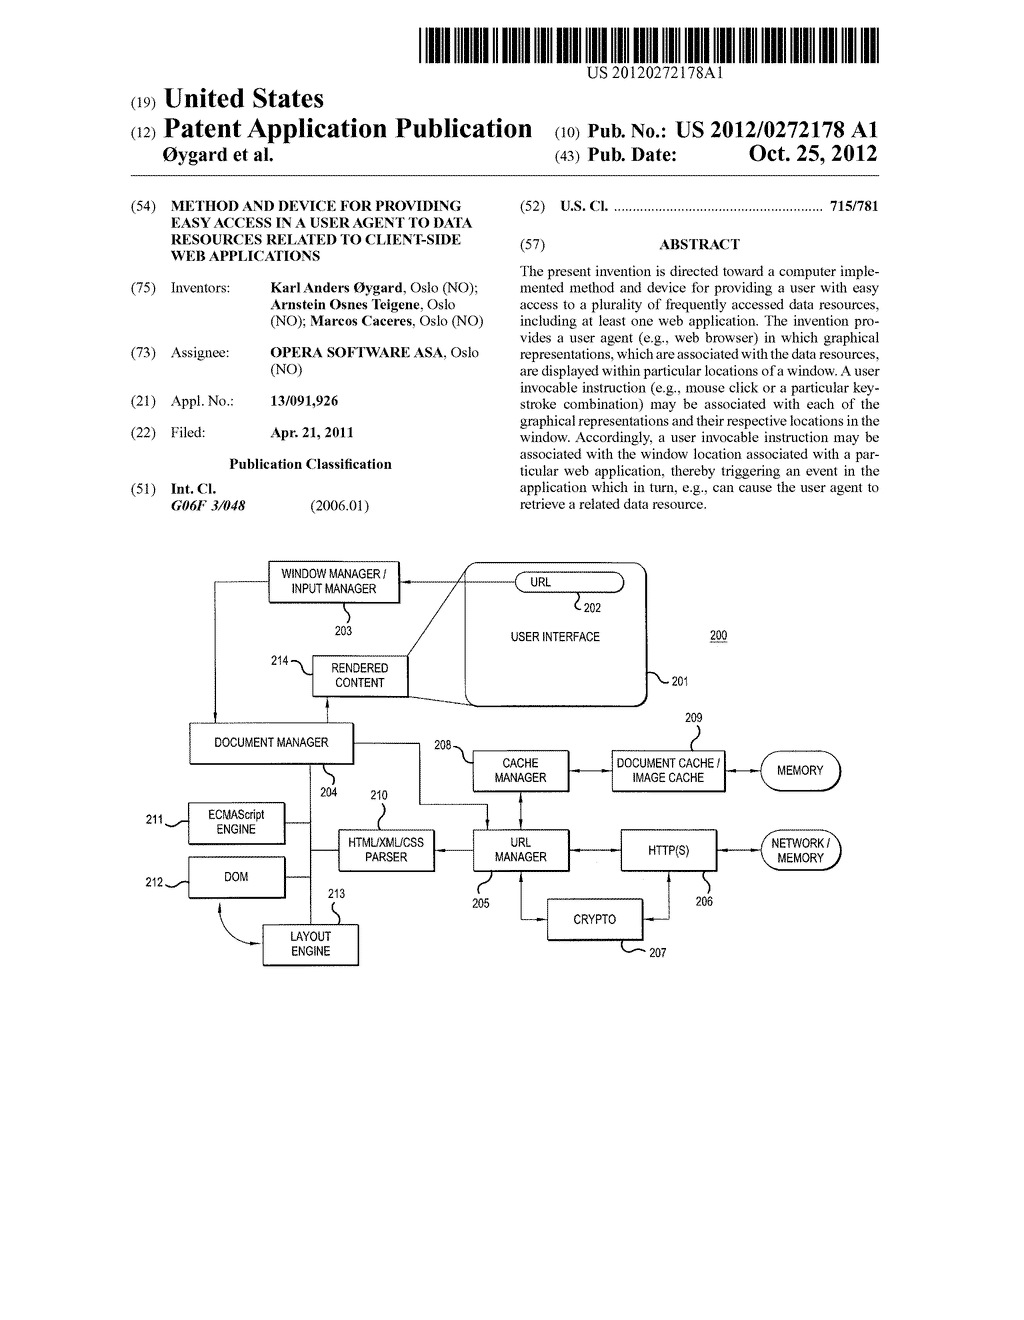 METHOD AND DEVICE FOR PROVIDING EASY ACCESS IN A USER AGENT TO DATA     RESOURCES RELATED TO CLIENT-SIDE WEB APPLICATIONS - diagram, schematic, and image 01